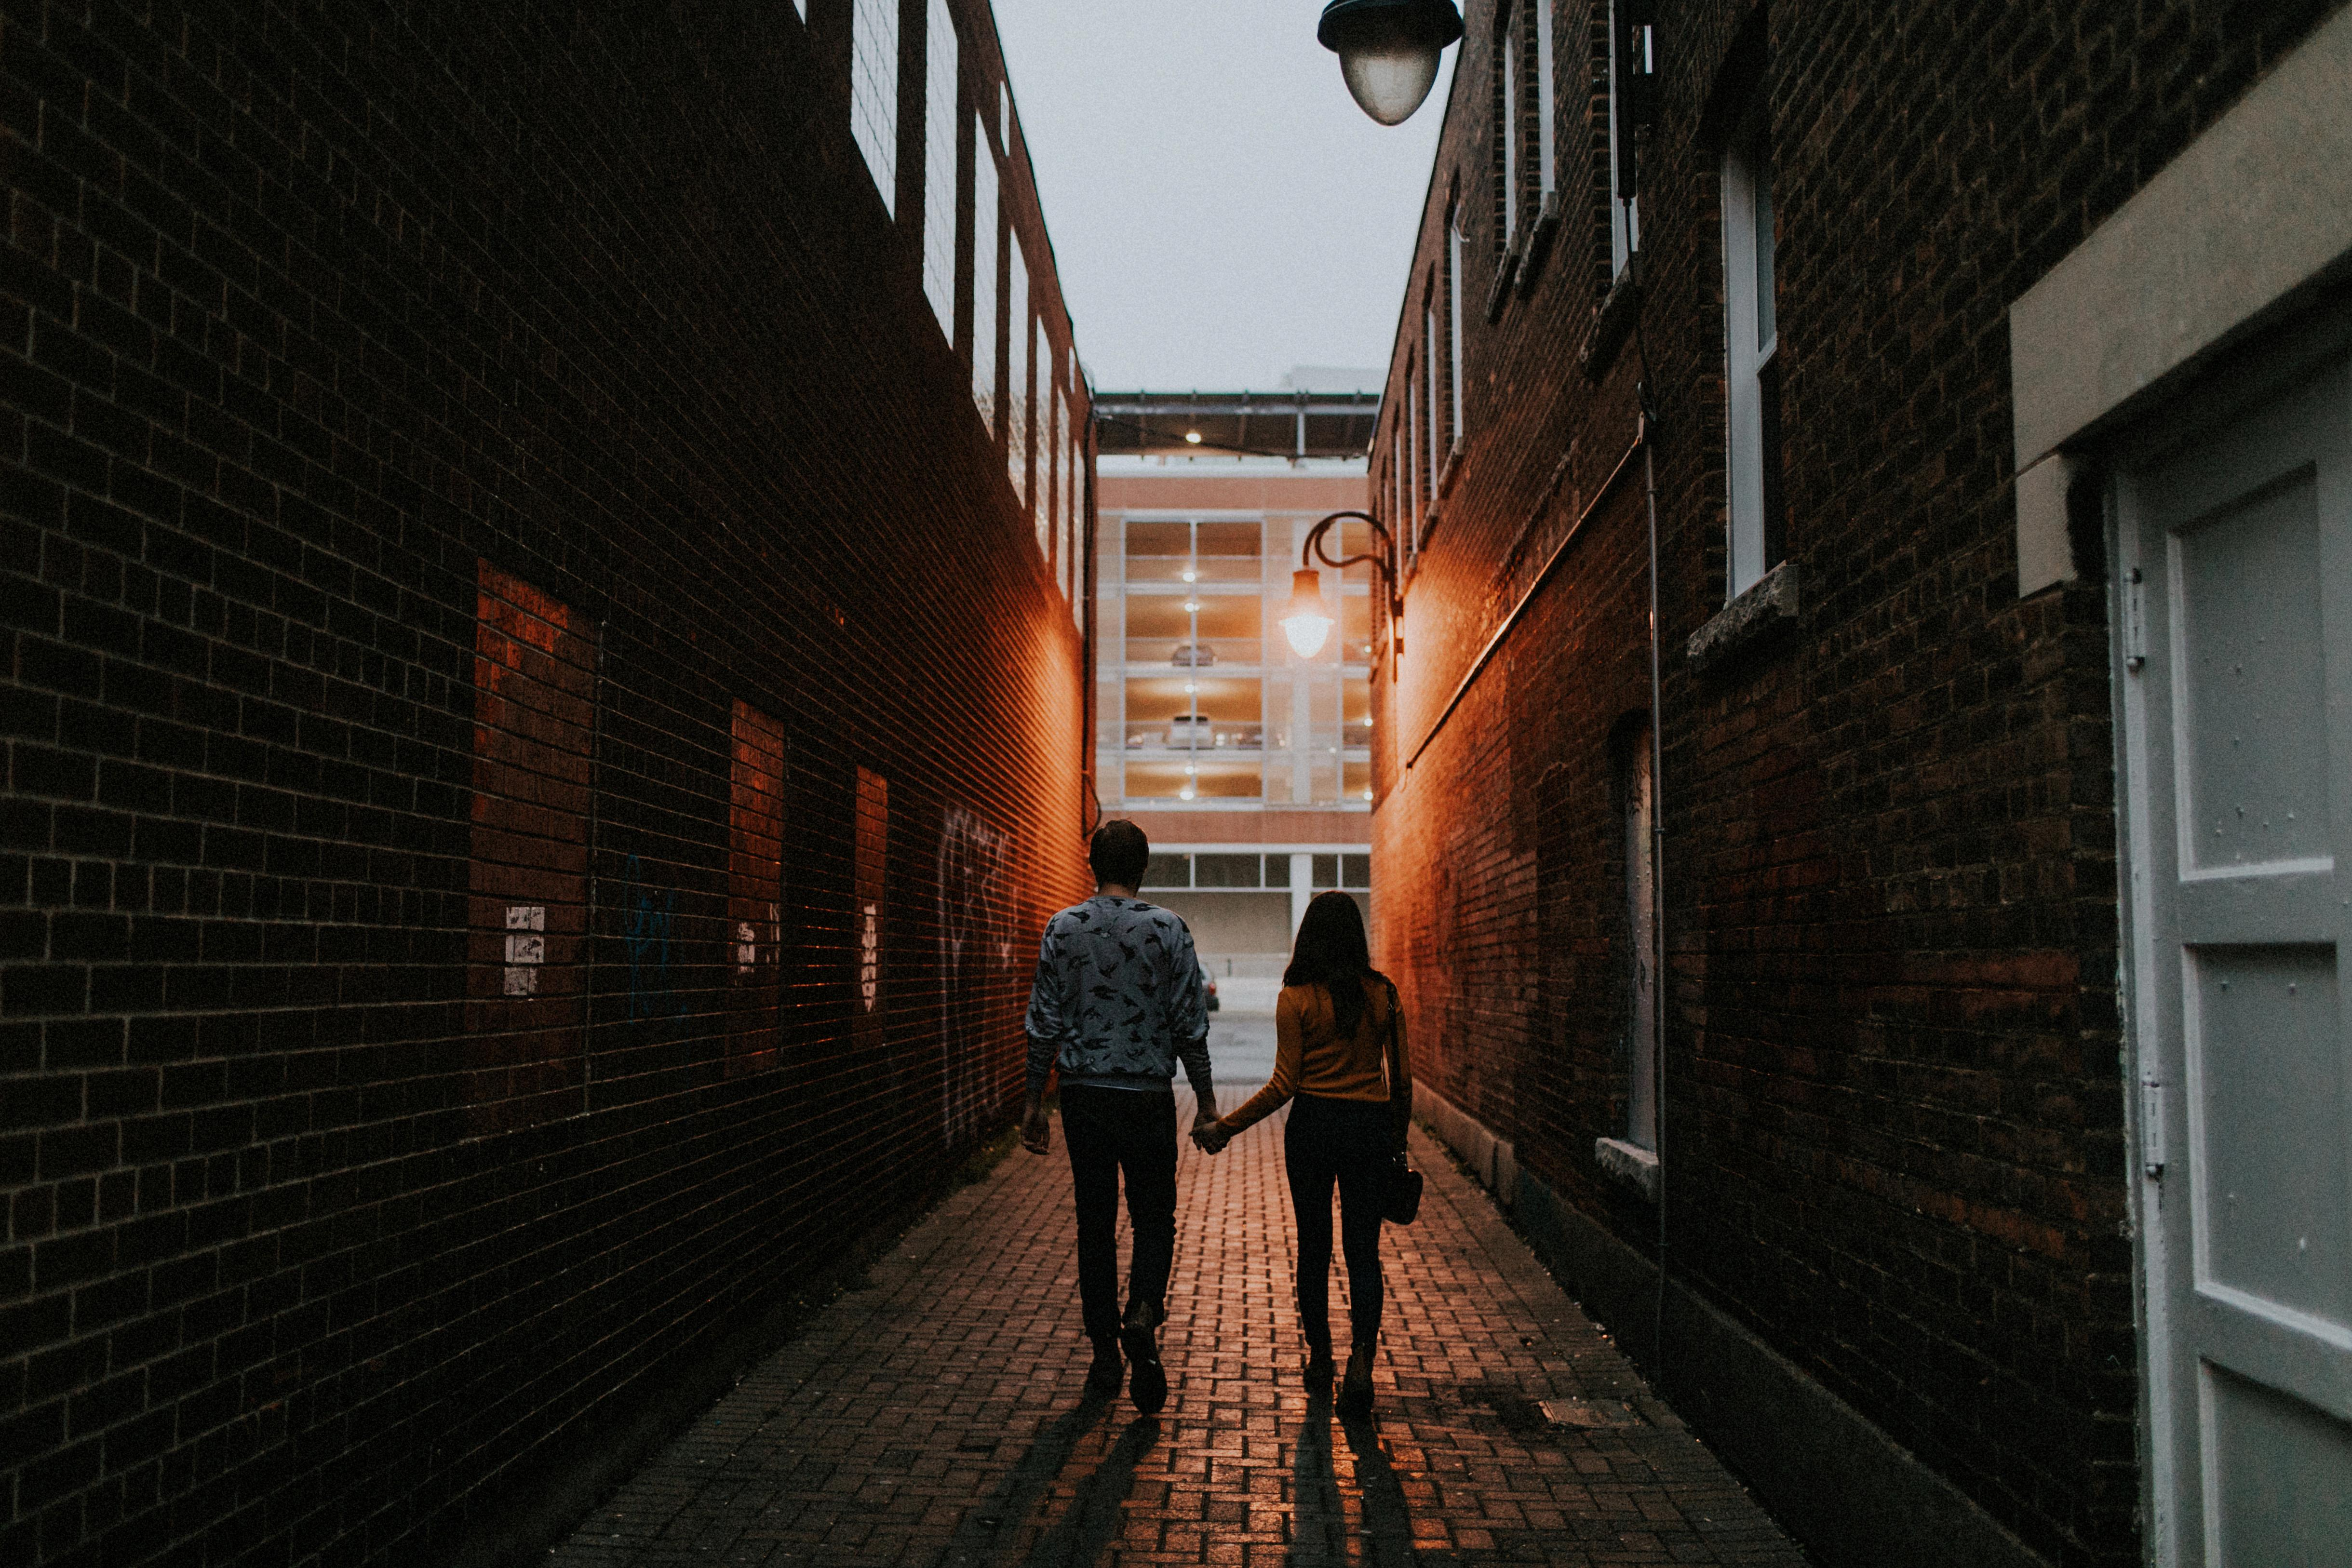 couple walking in alley way at night